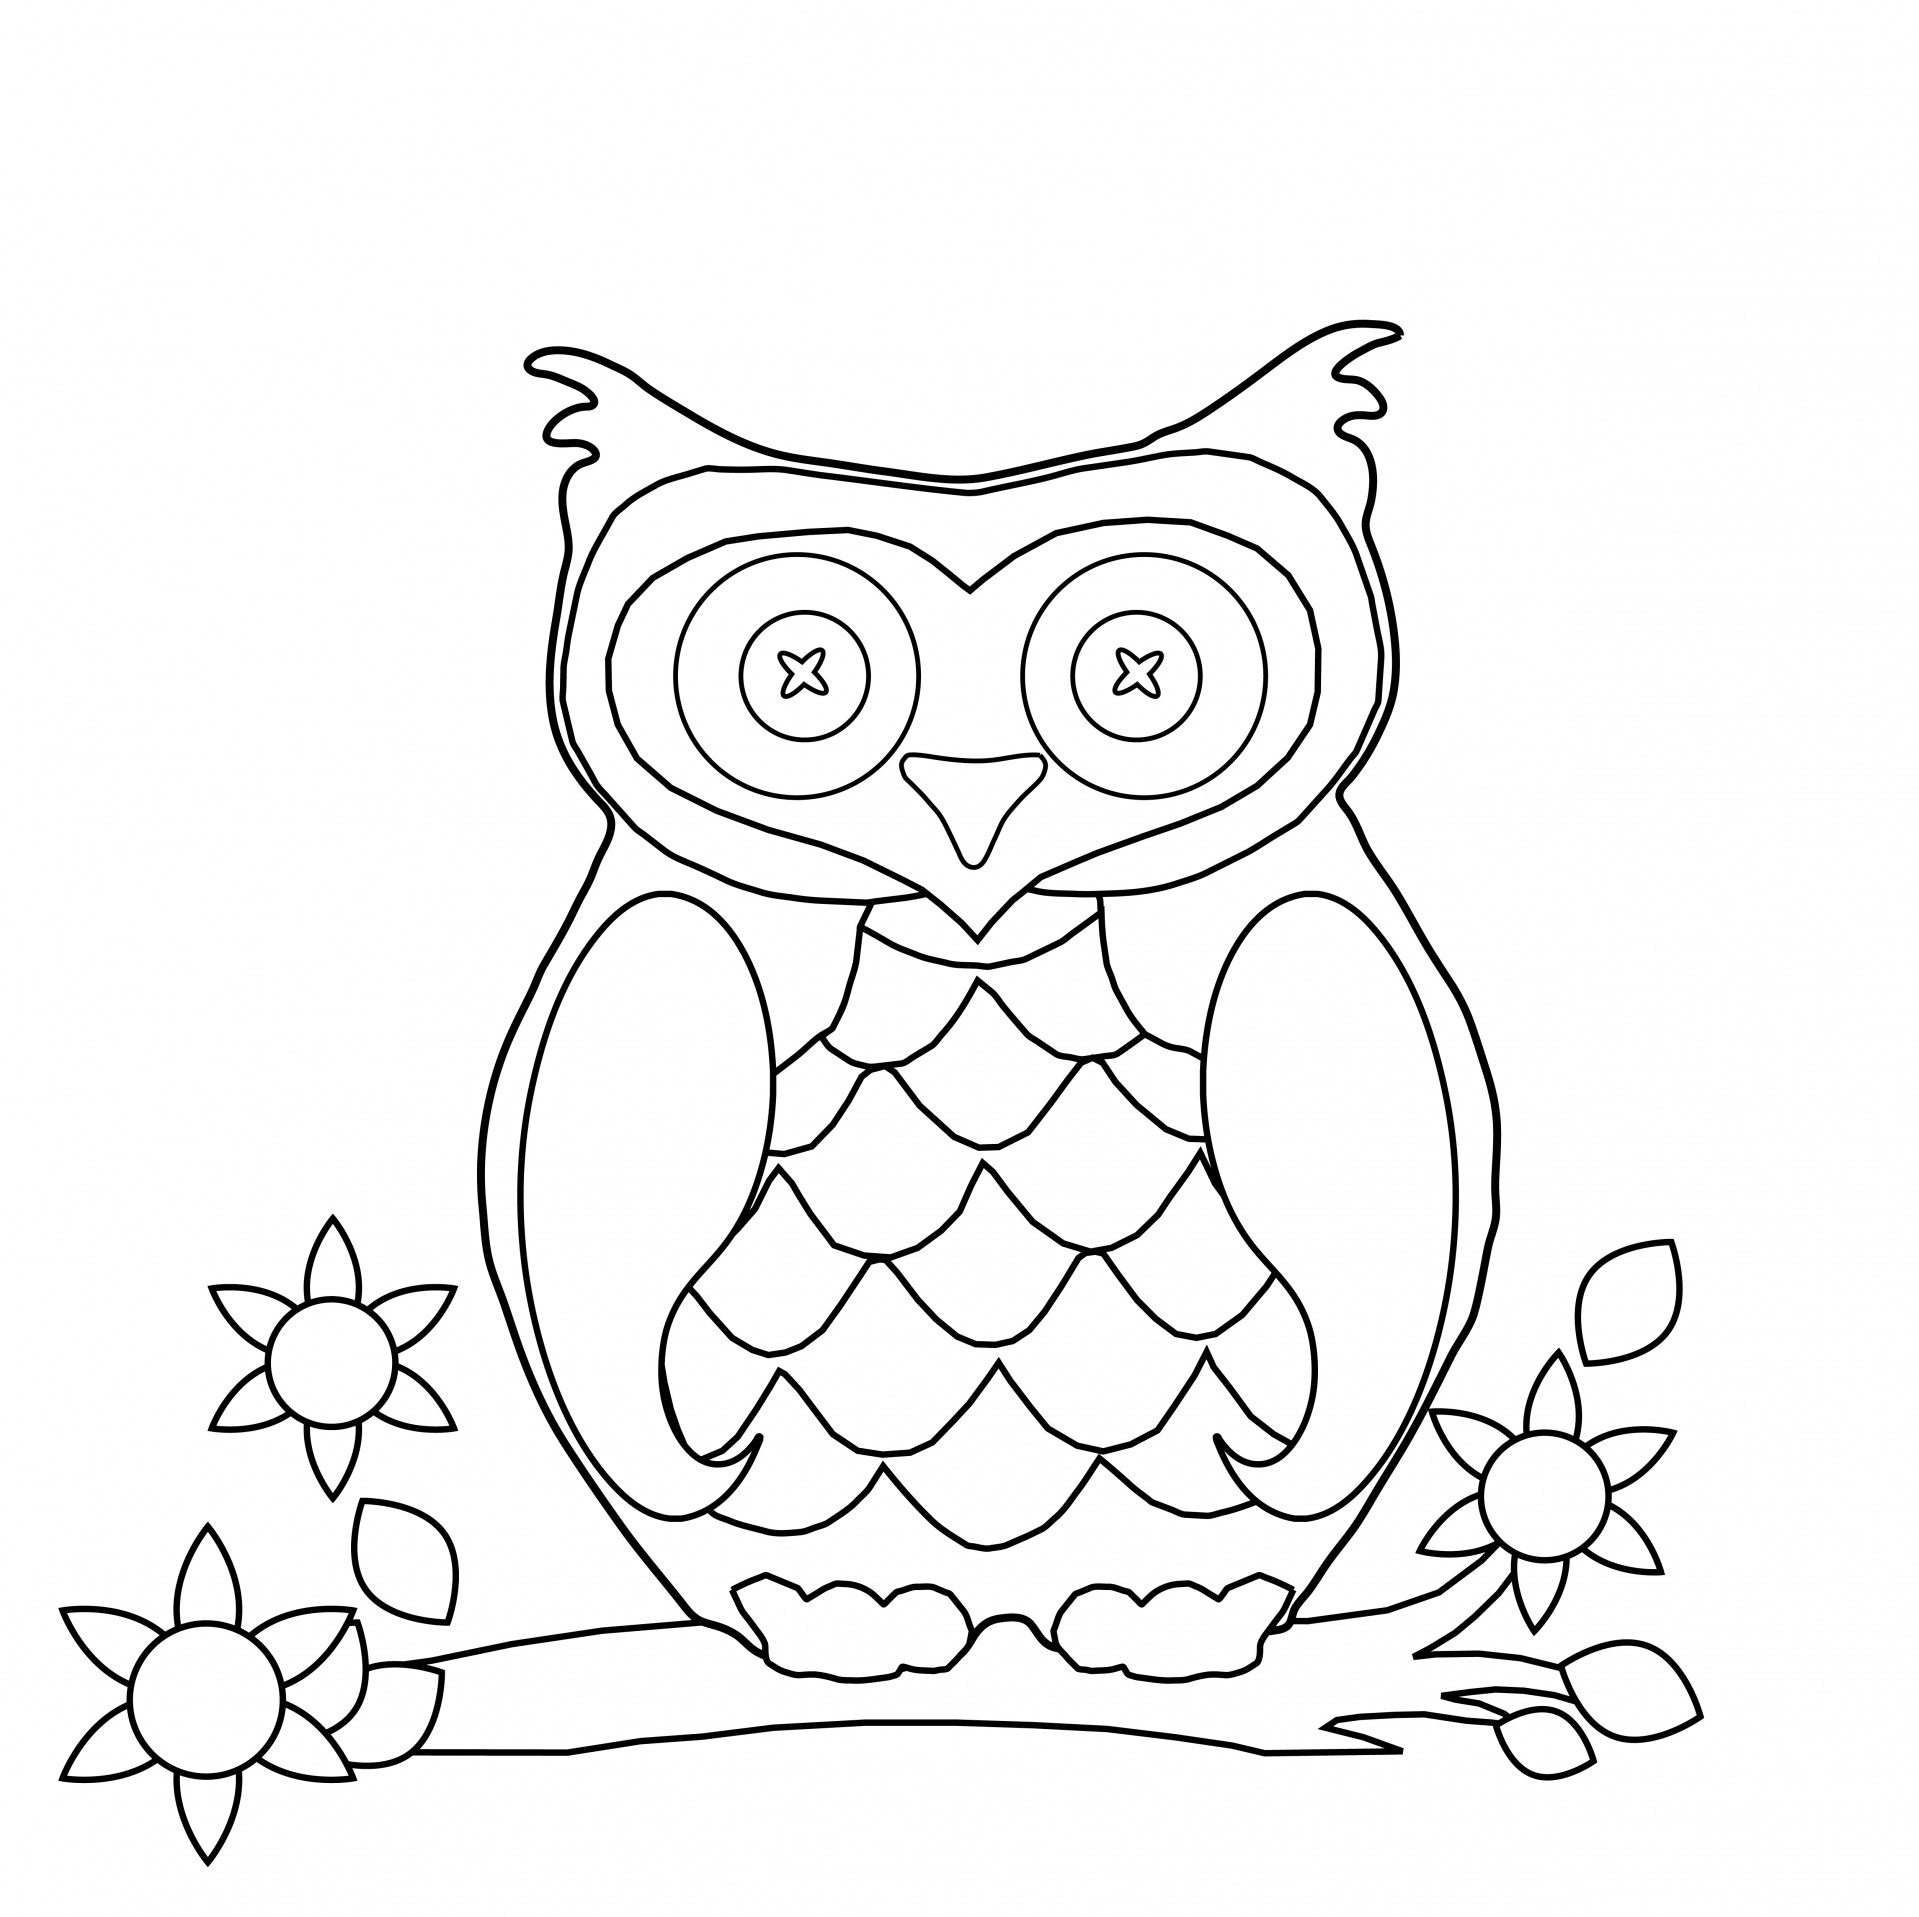 coloring book for adults printable detailed coloring pages for adults free printable printable for book adults coloring